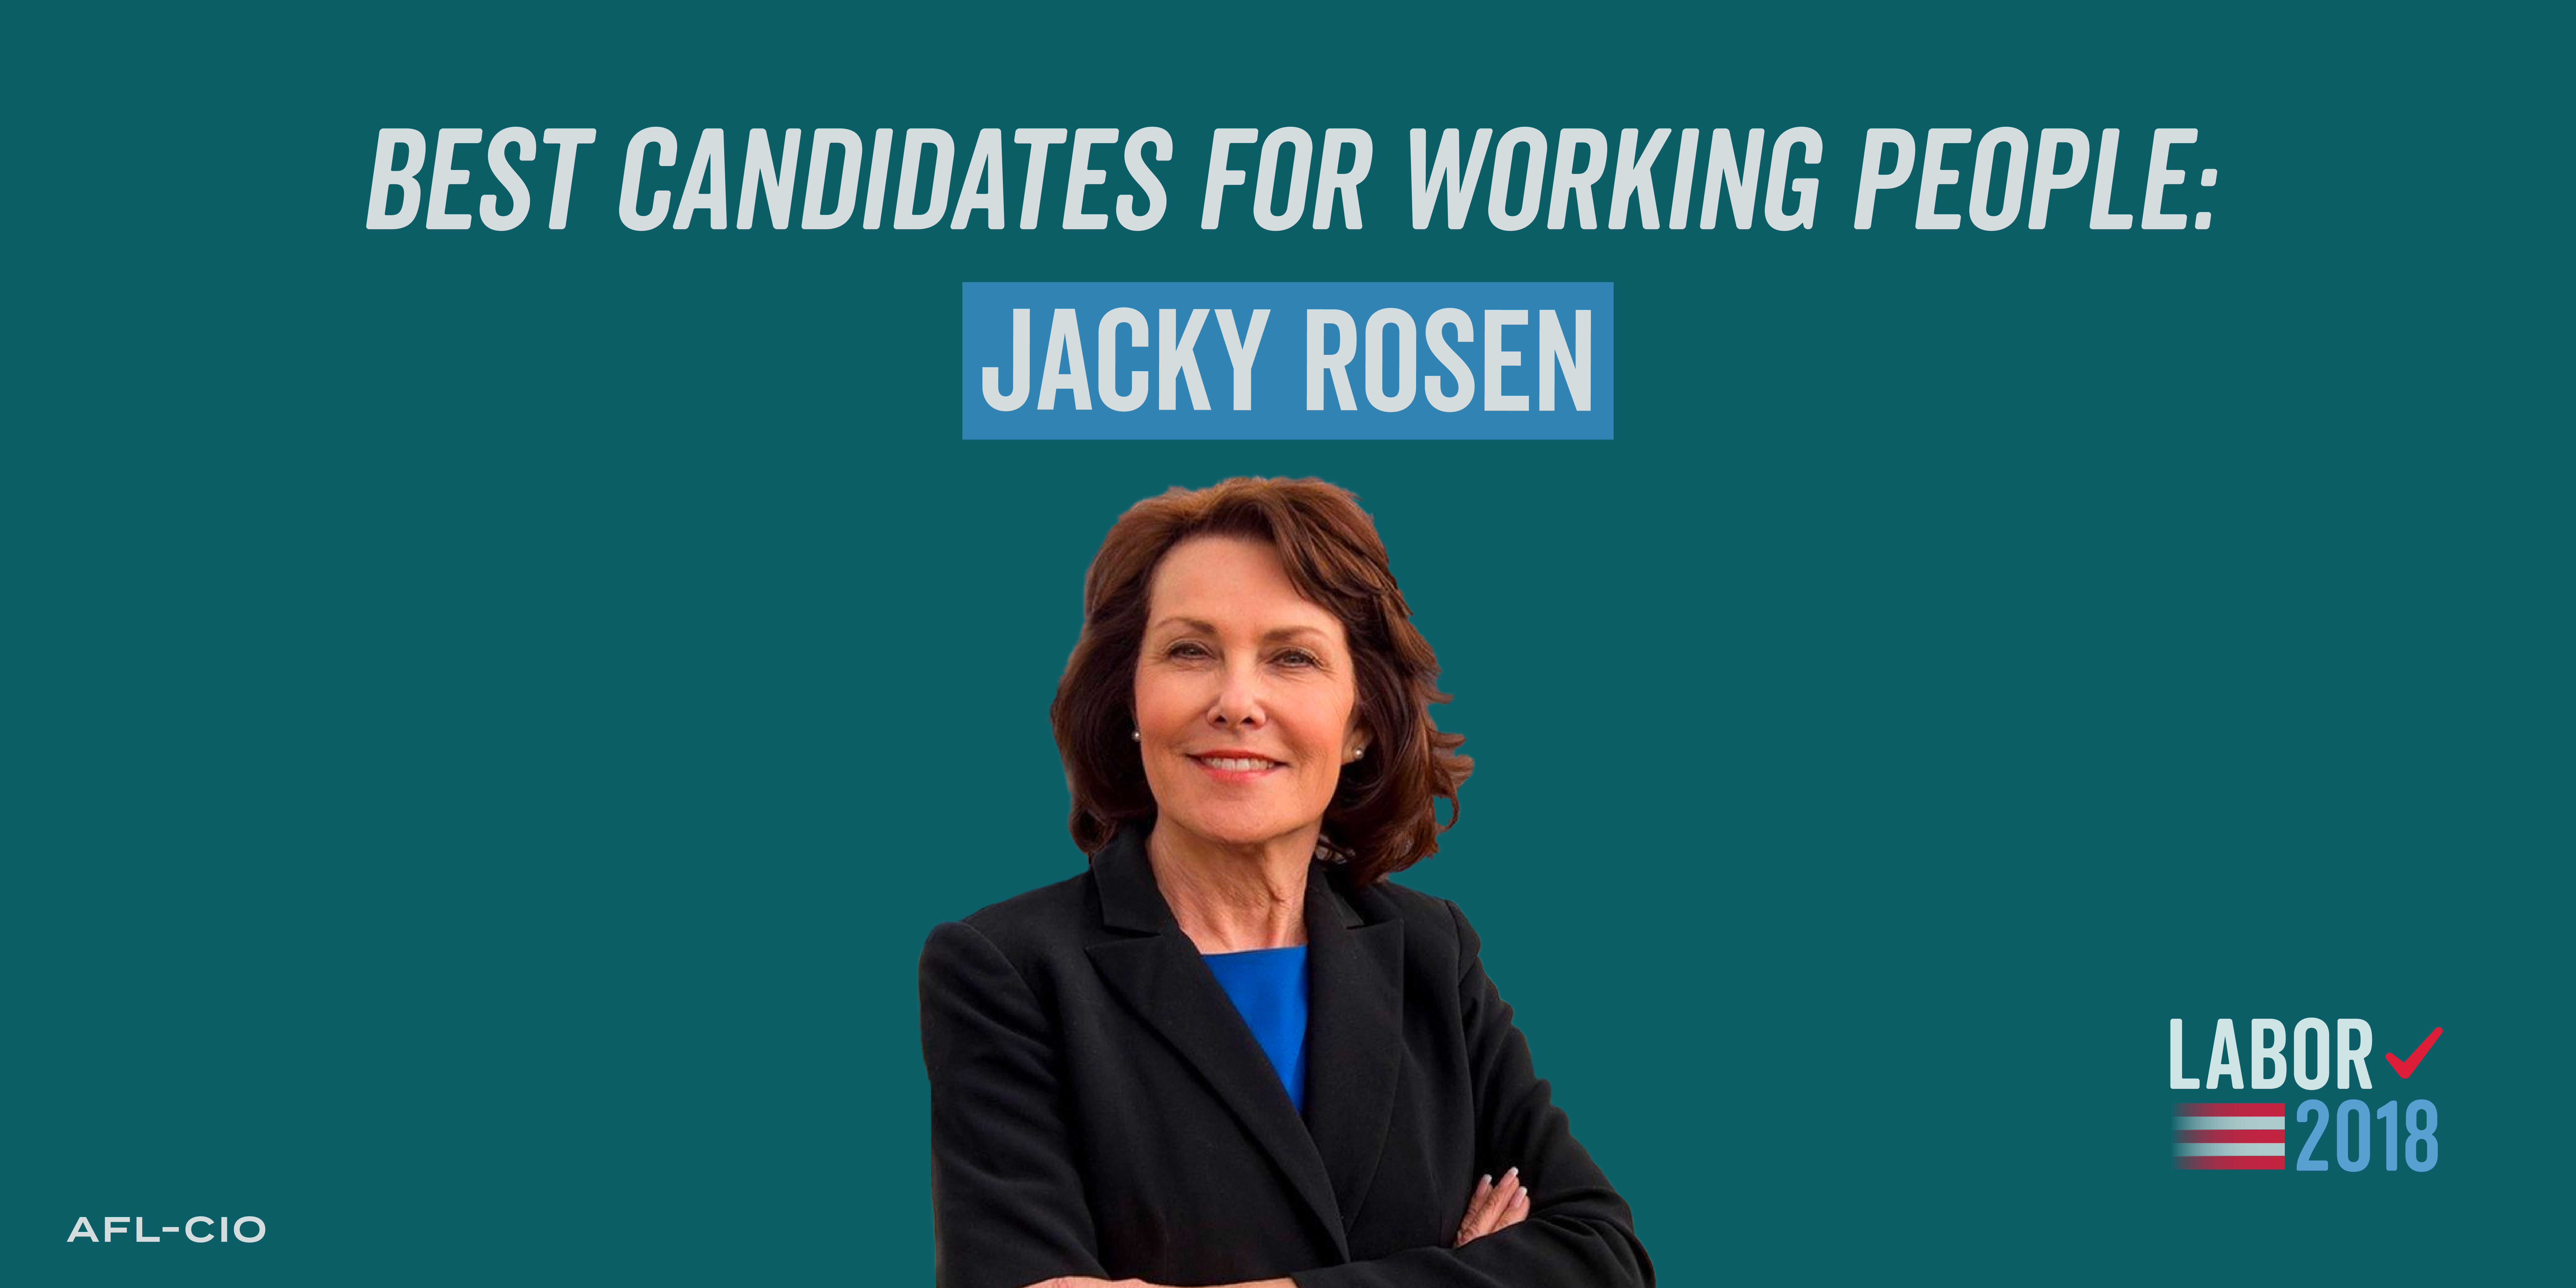 Best Candidates for Working People: Jacky Rosen